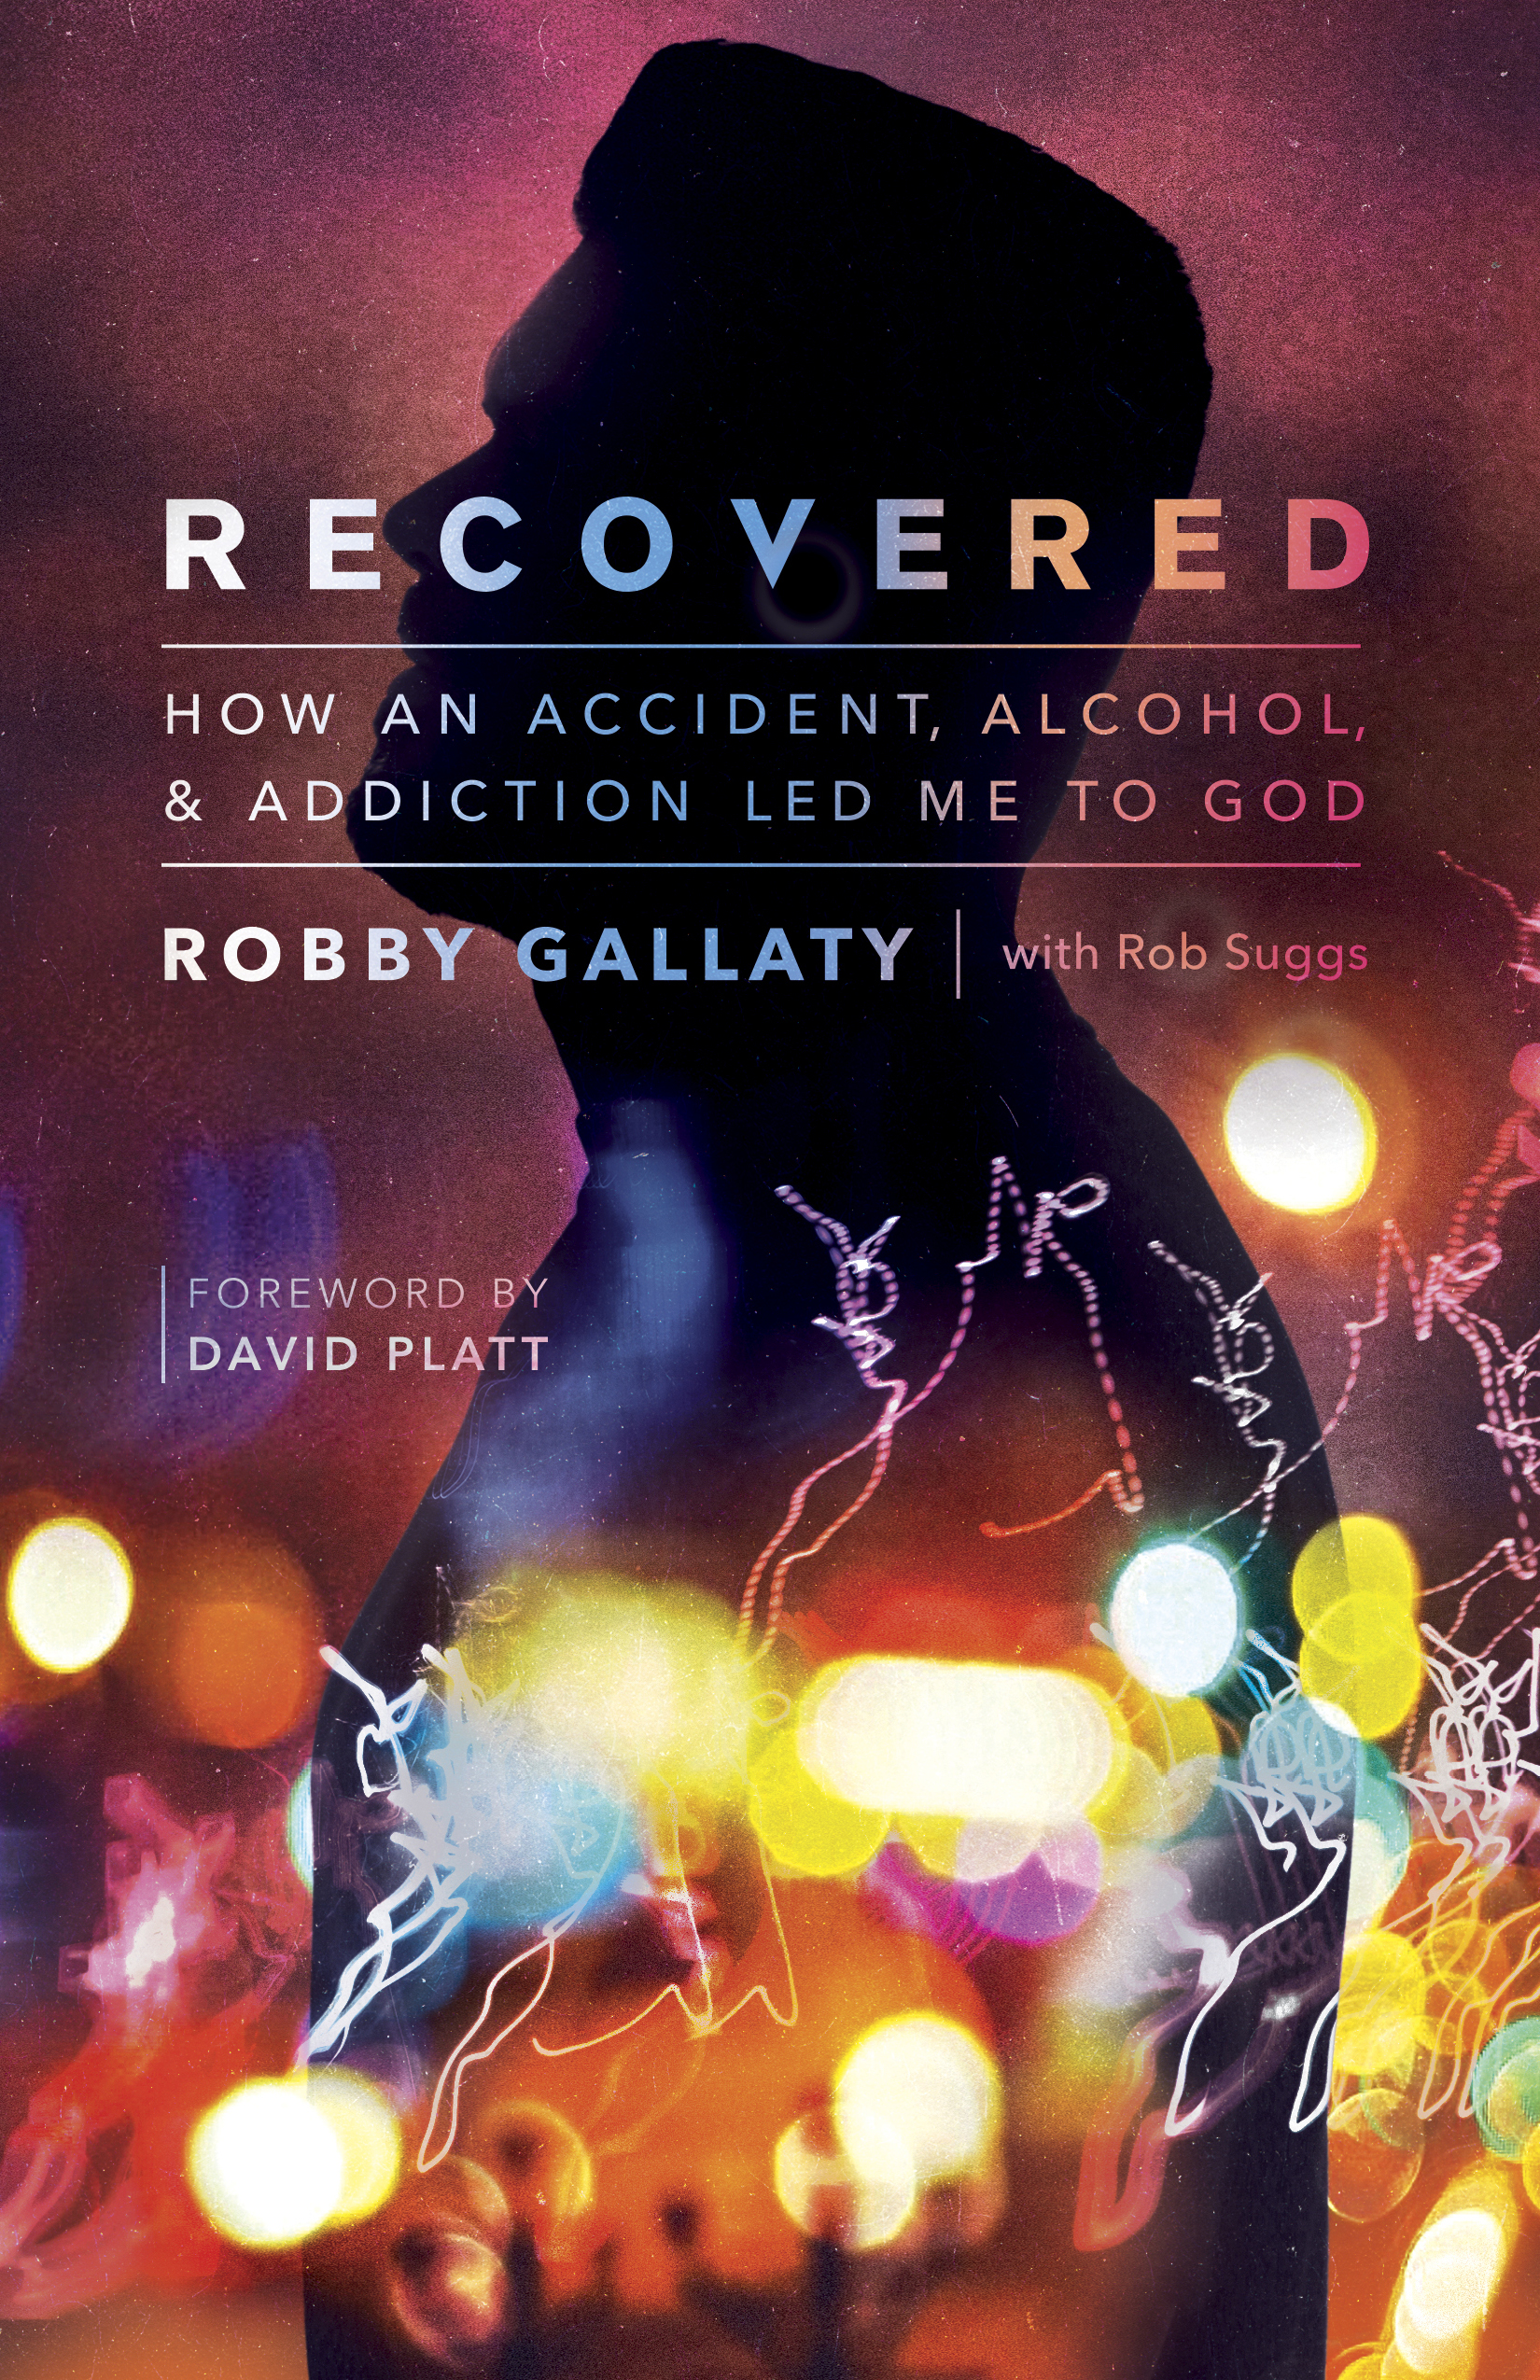 Recovered by Robby Gallaty